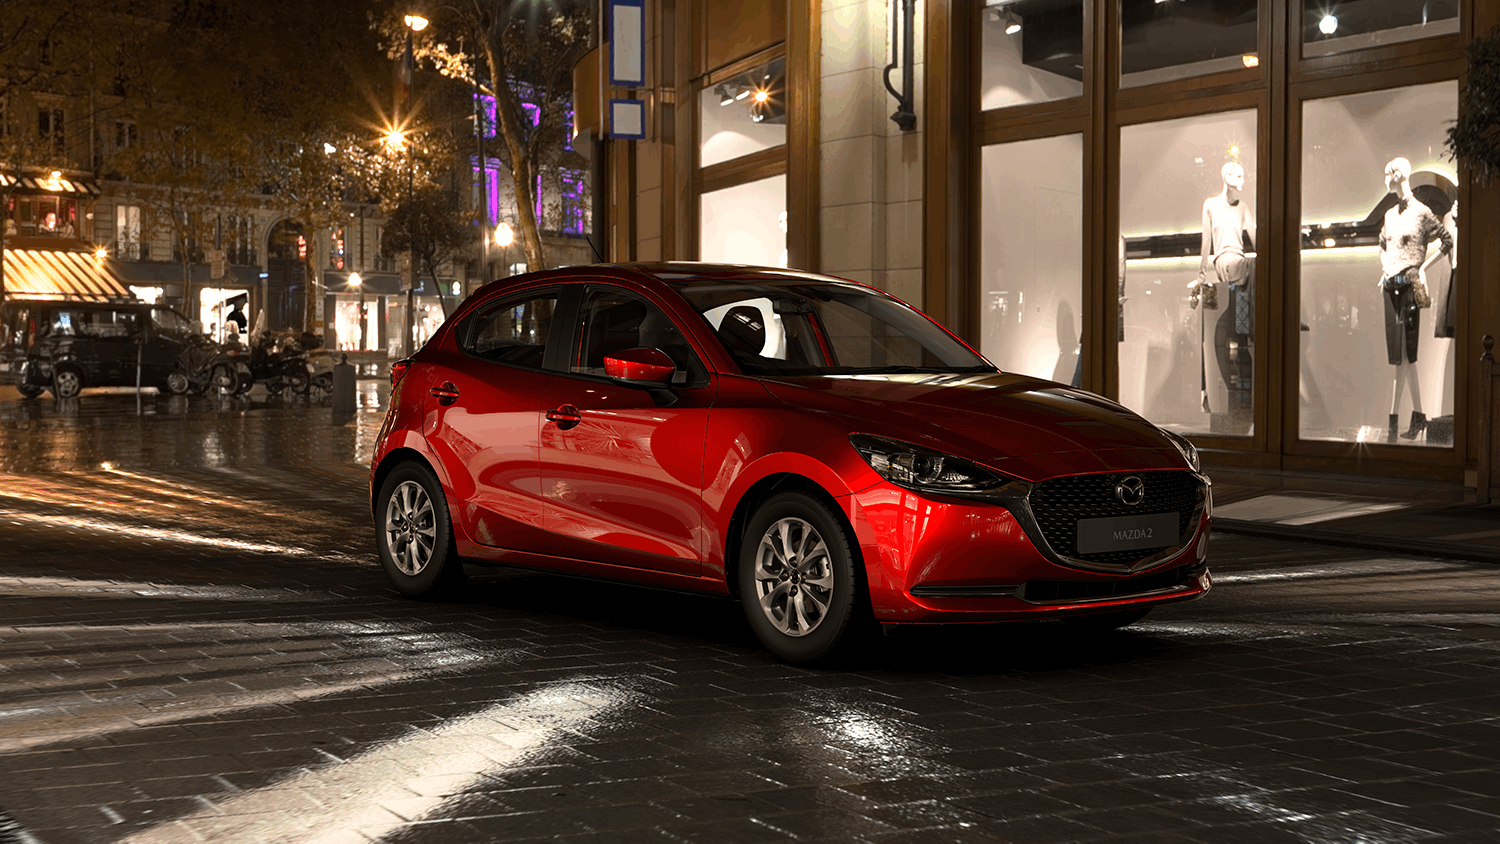 0 deposit car  New Mazda 2 Deals and Offers | Mazda 2 Price | T W White ..